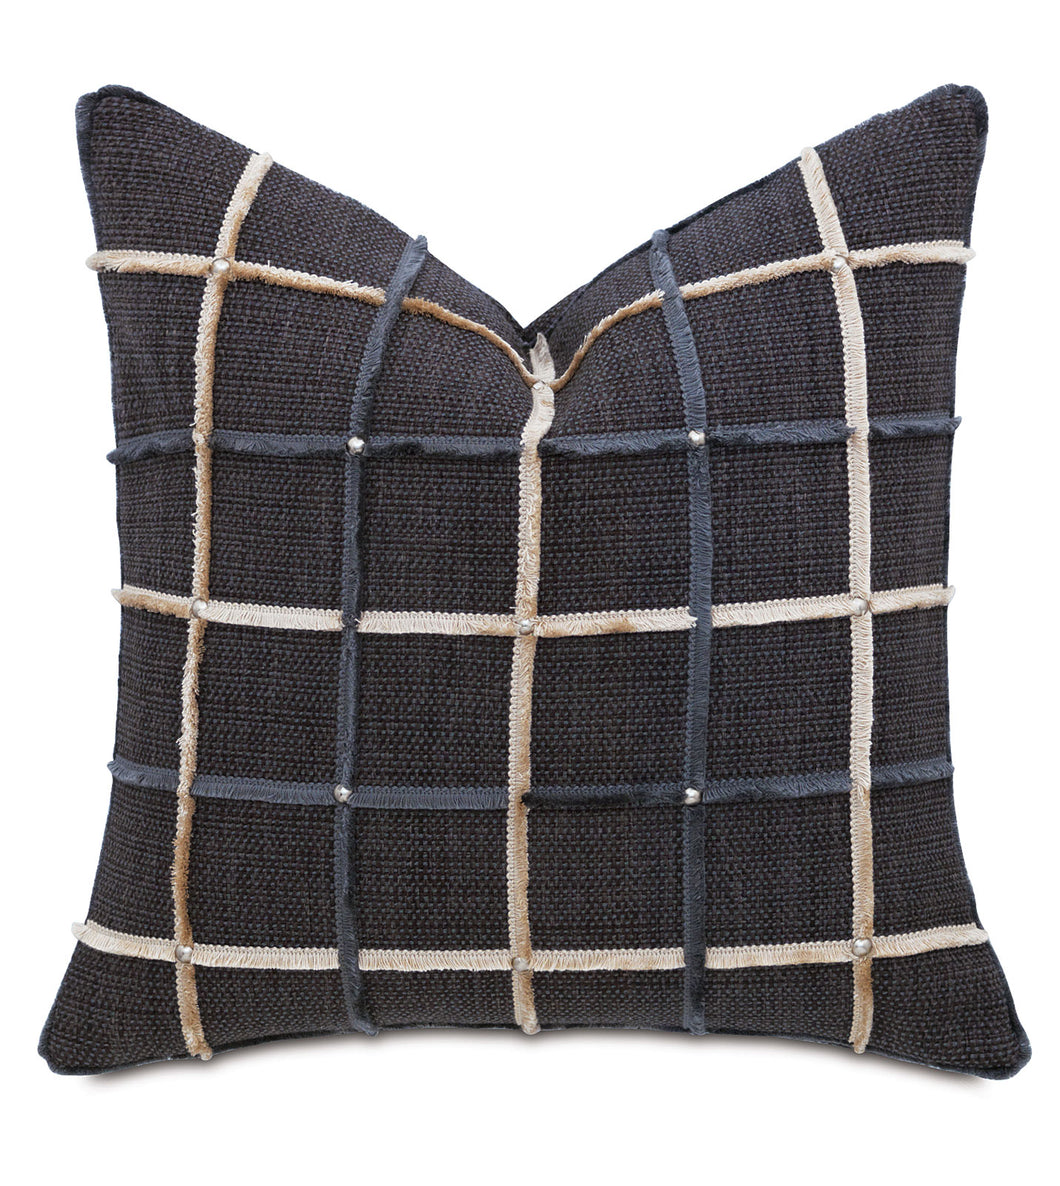 Charcoal Rustic Lodge Studded Check Throw Pillow With Brush Fringe 22